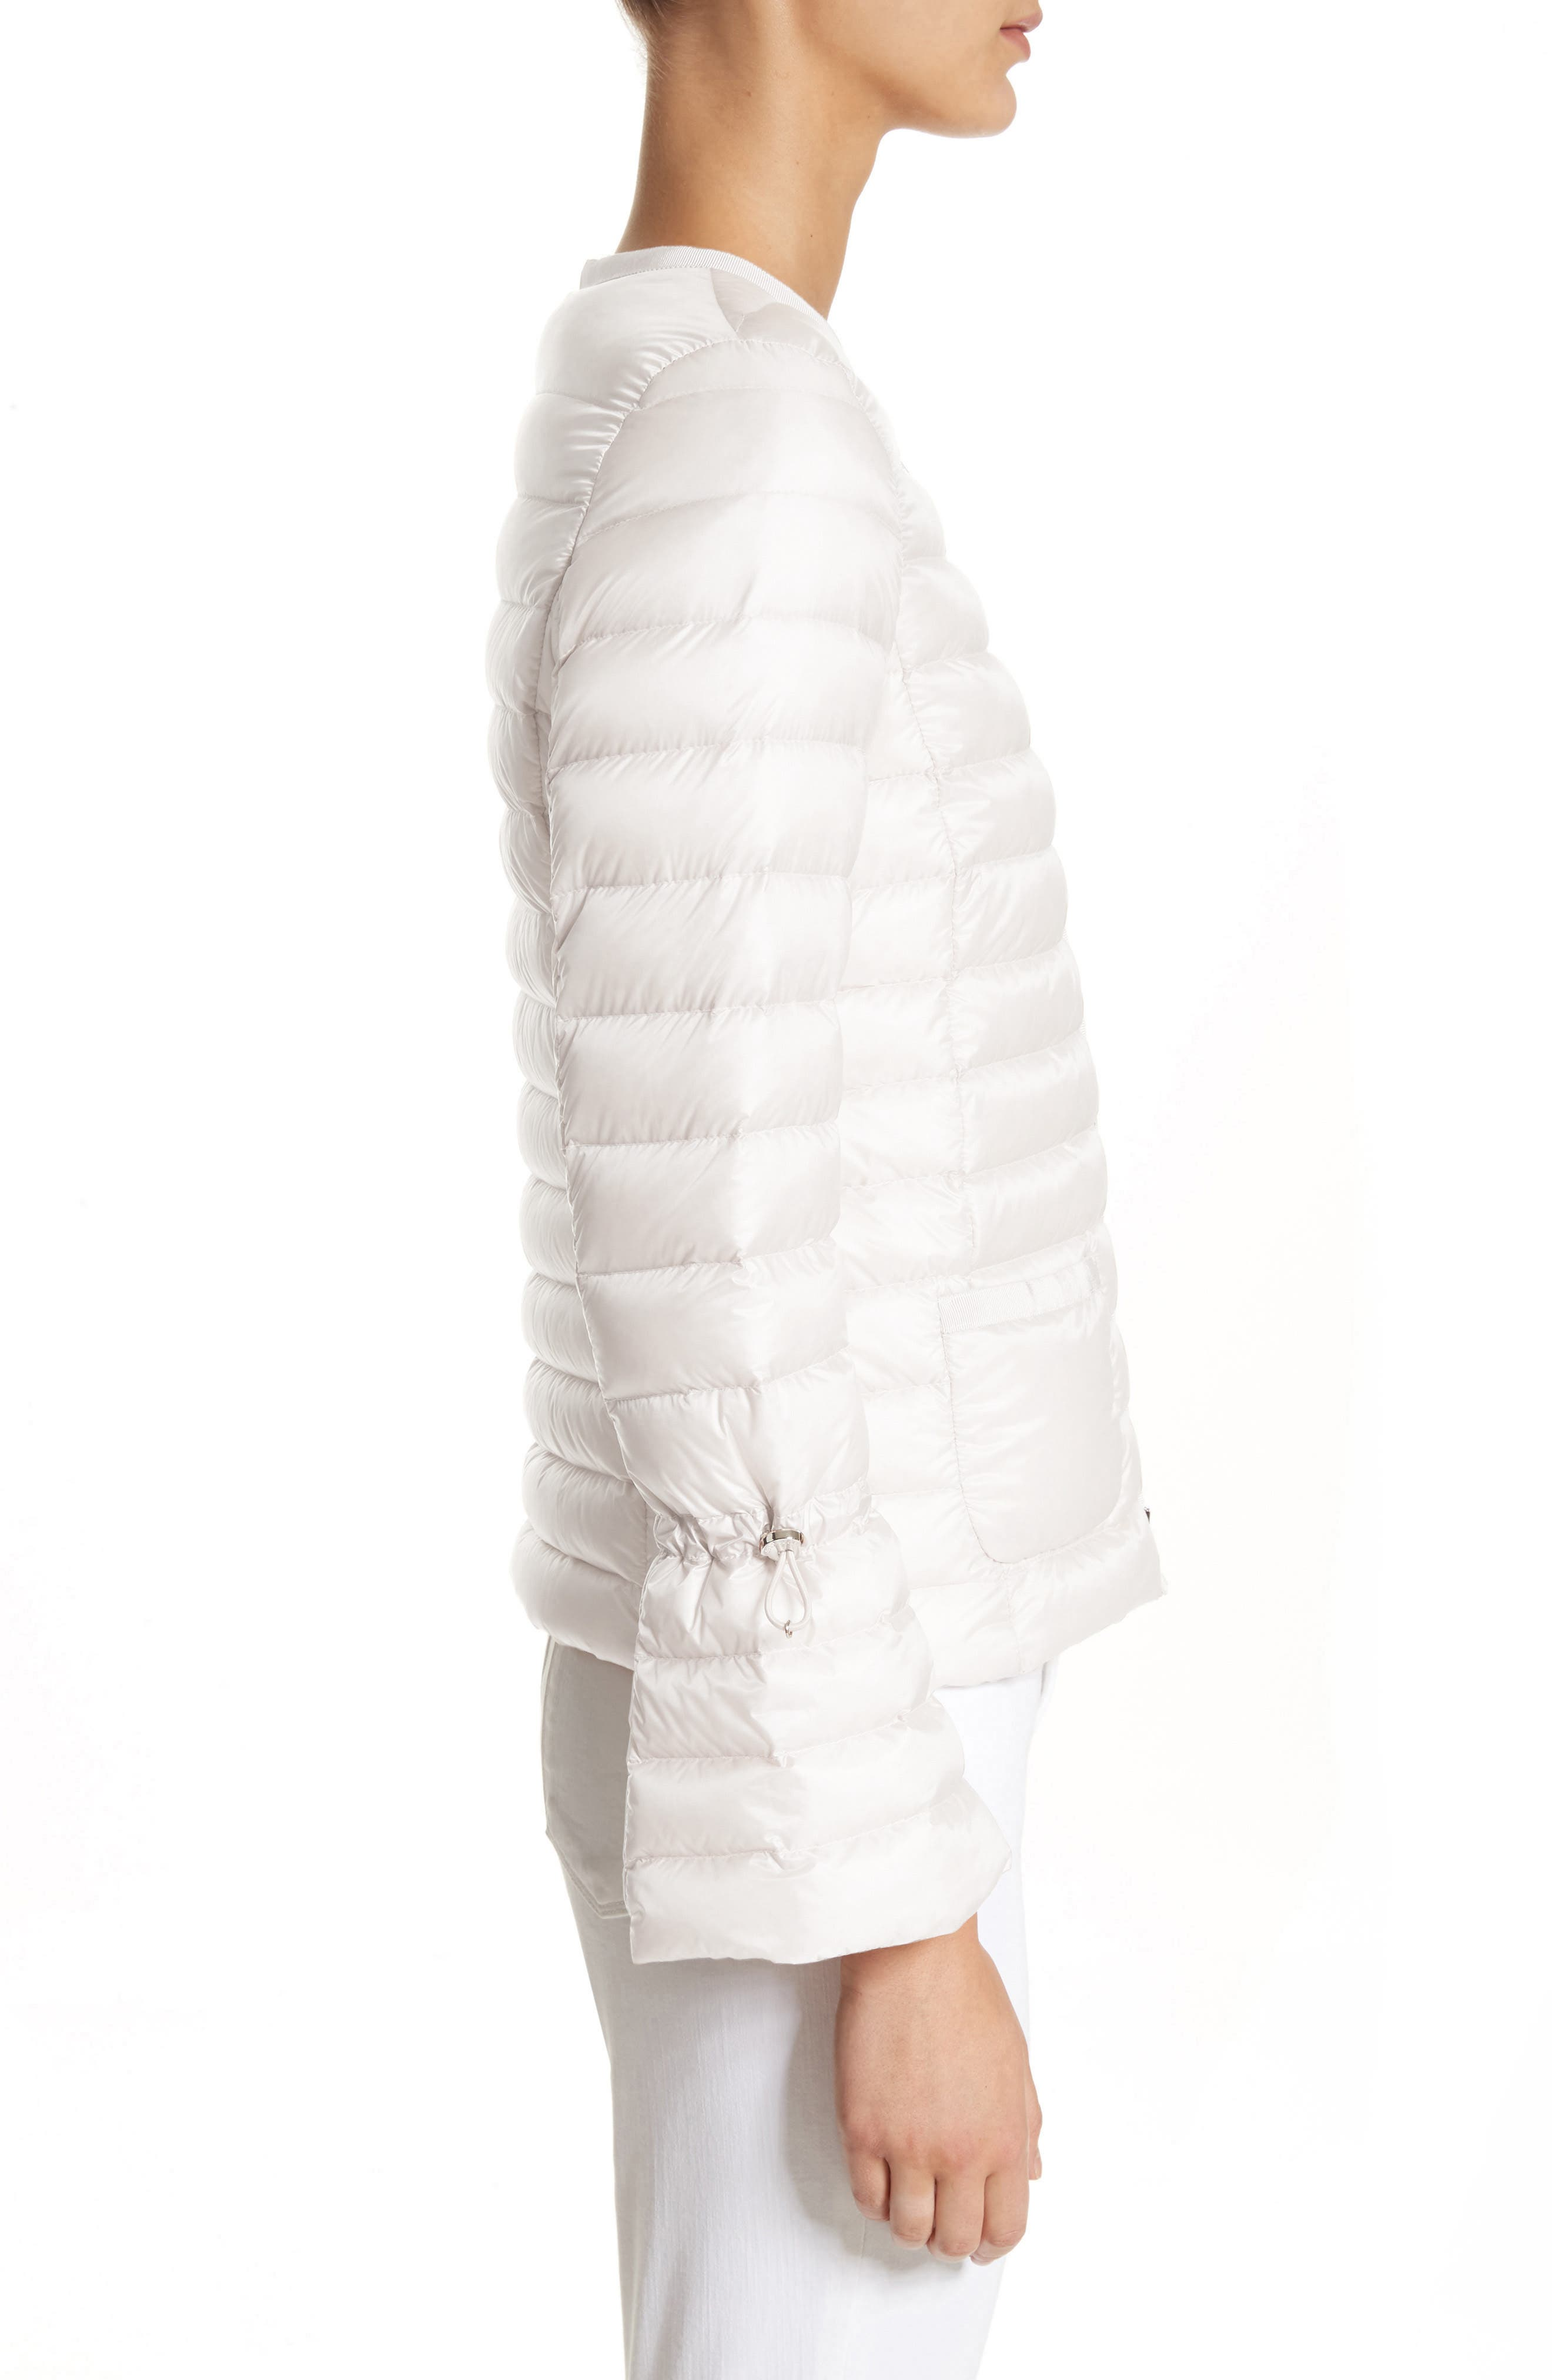 Almandin Quilted Puffer Jacket,                             Alternate thumbnail 3, color,                             101